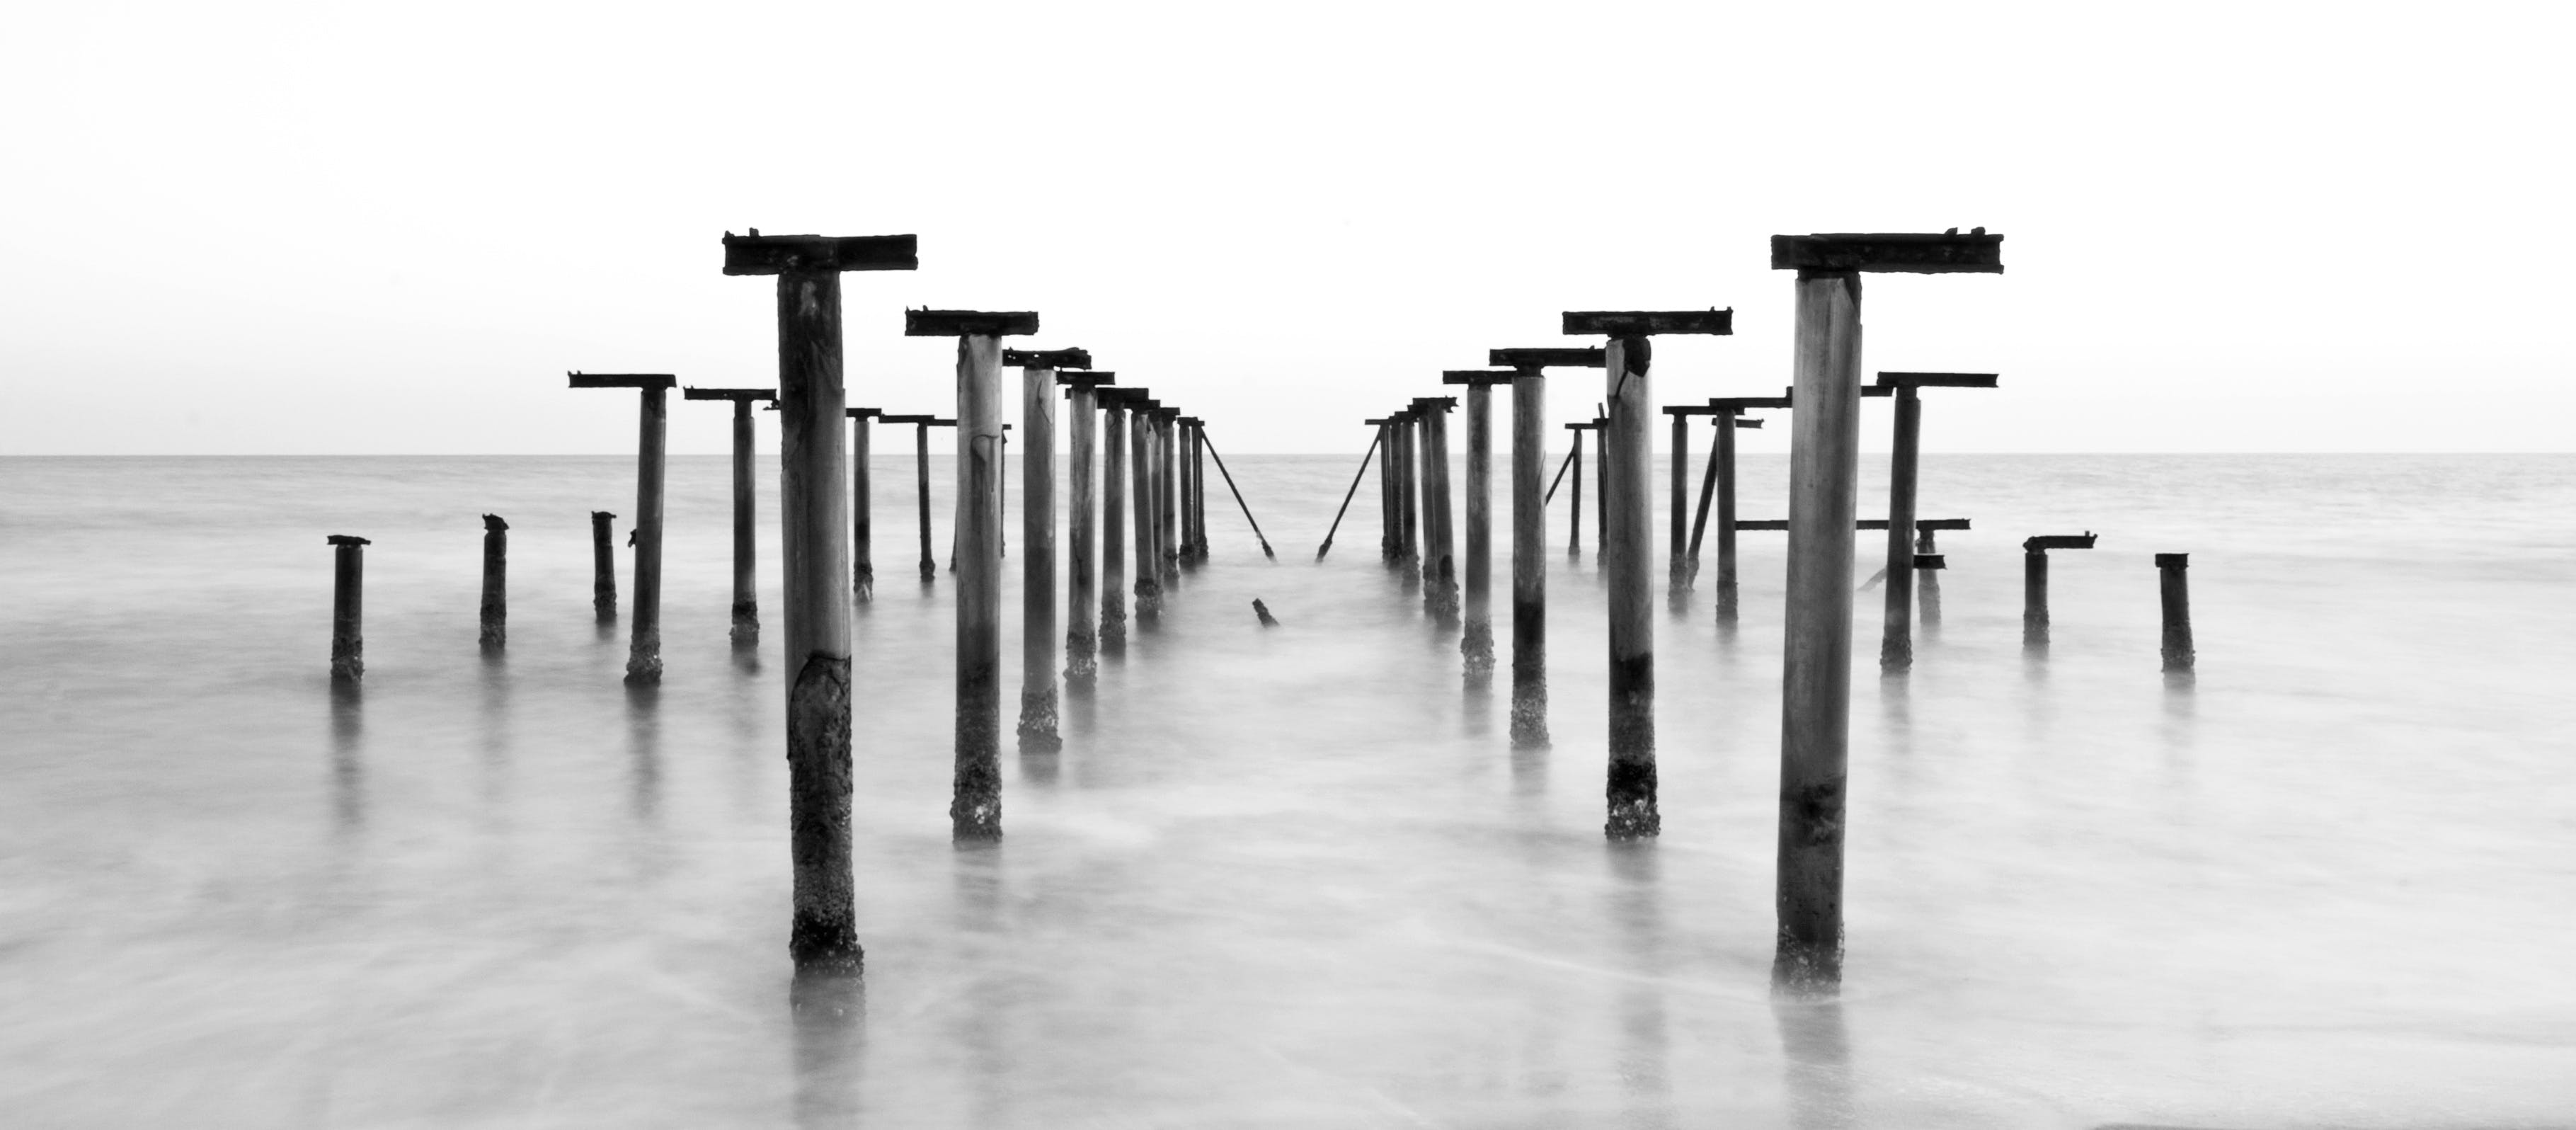 Grayscale Photography of Posts in Body of Water